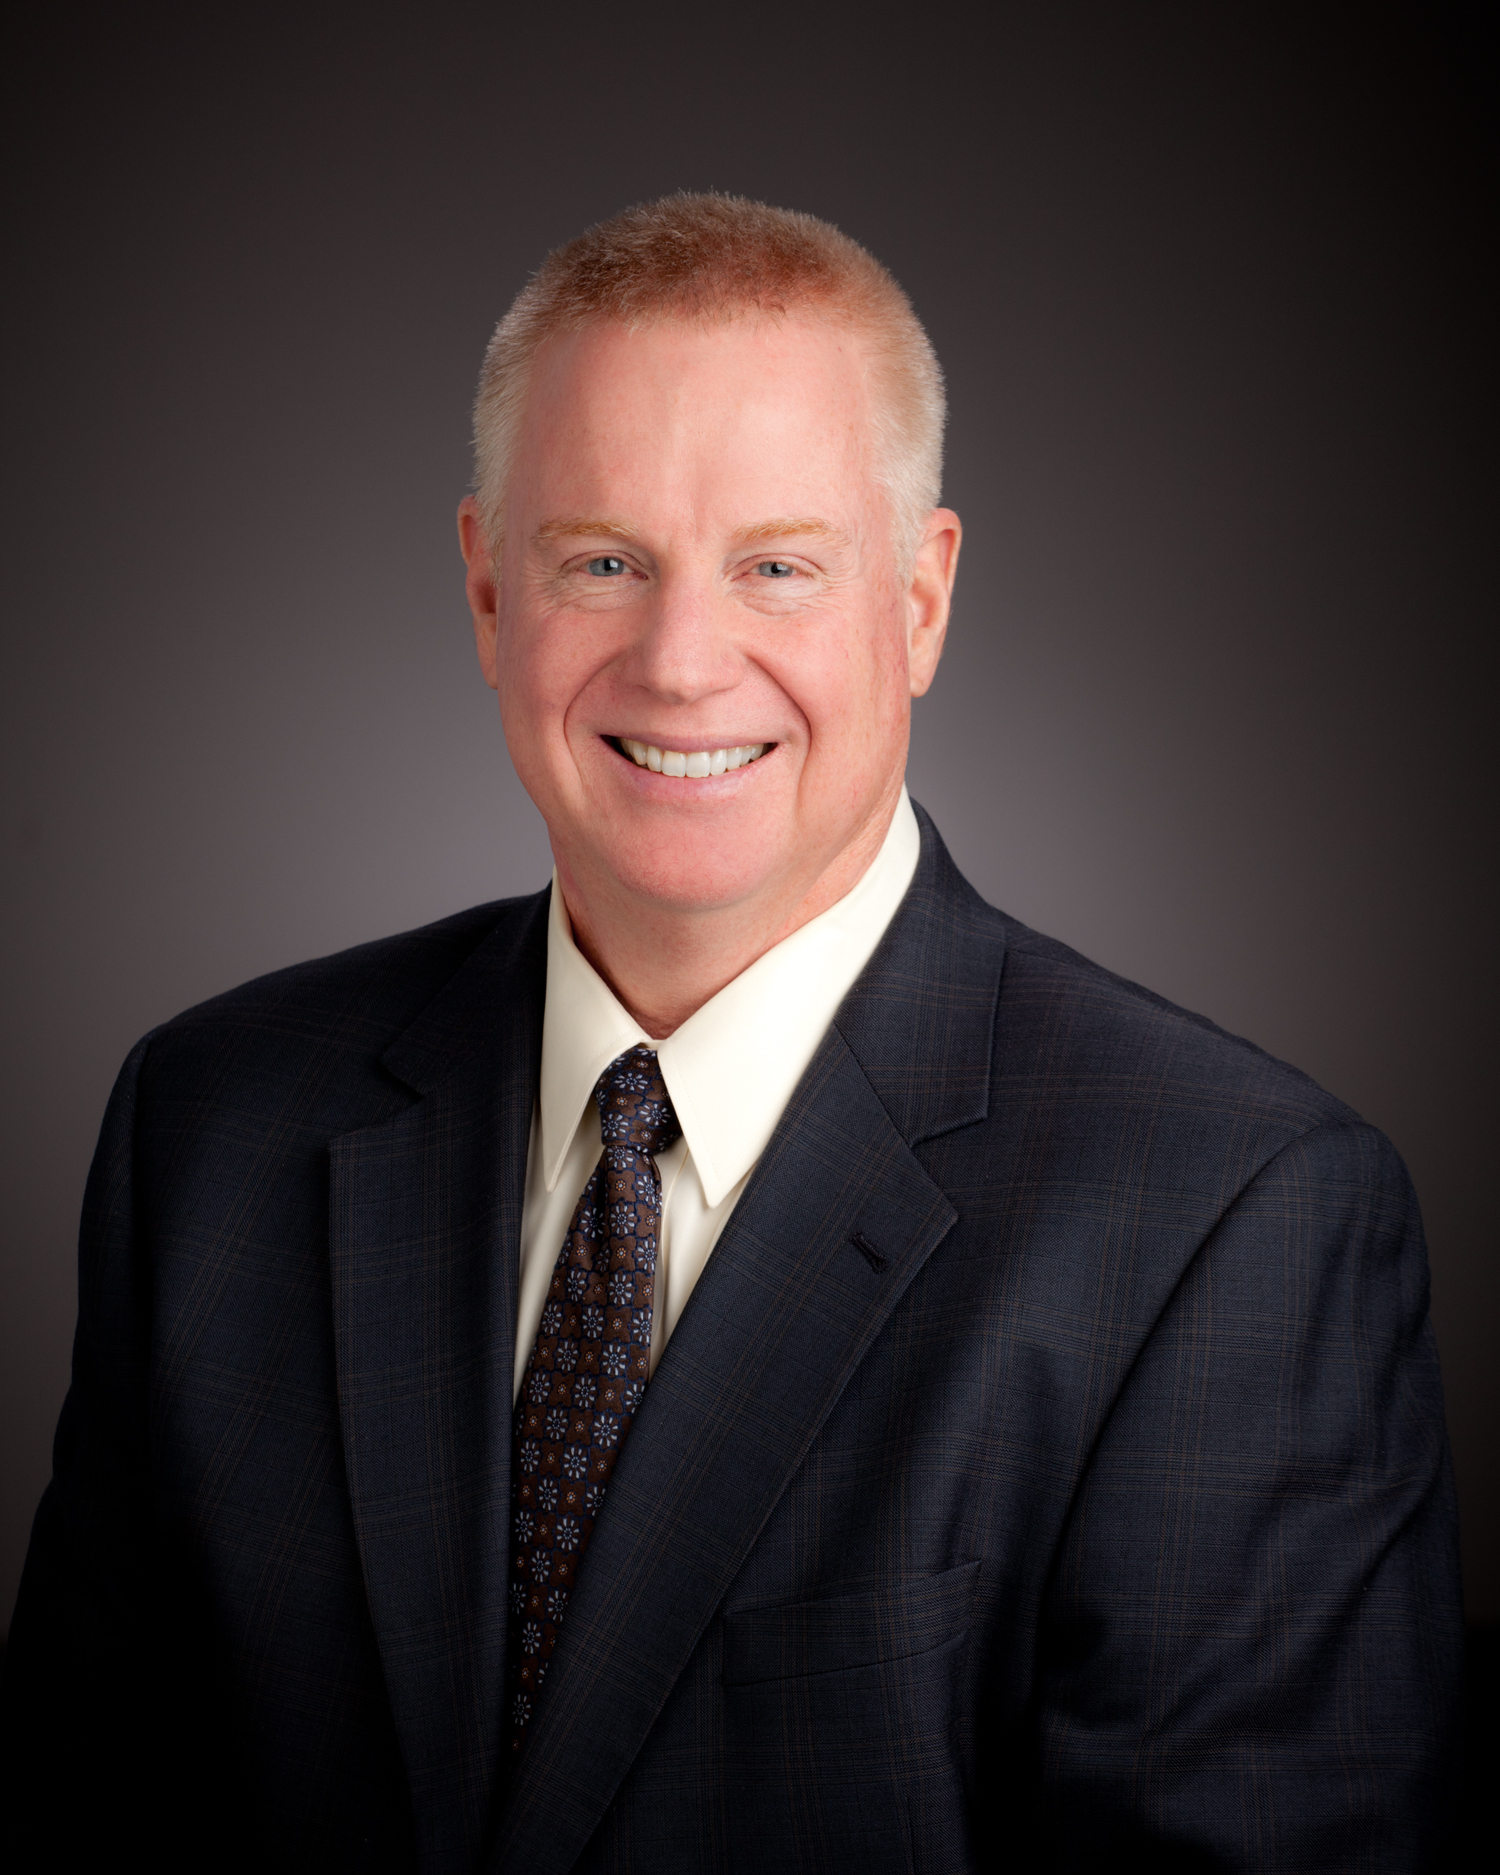 Enterprise Trust announced the appointment of Mark W. Ralfs as Vice President and Private Banker.